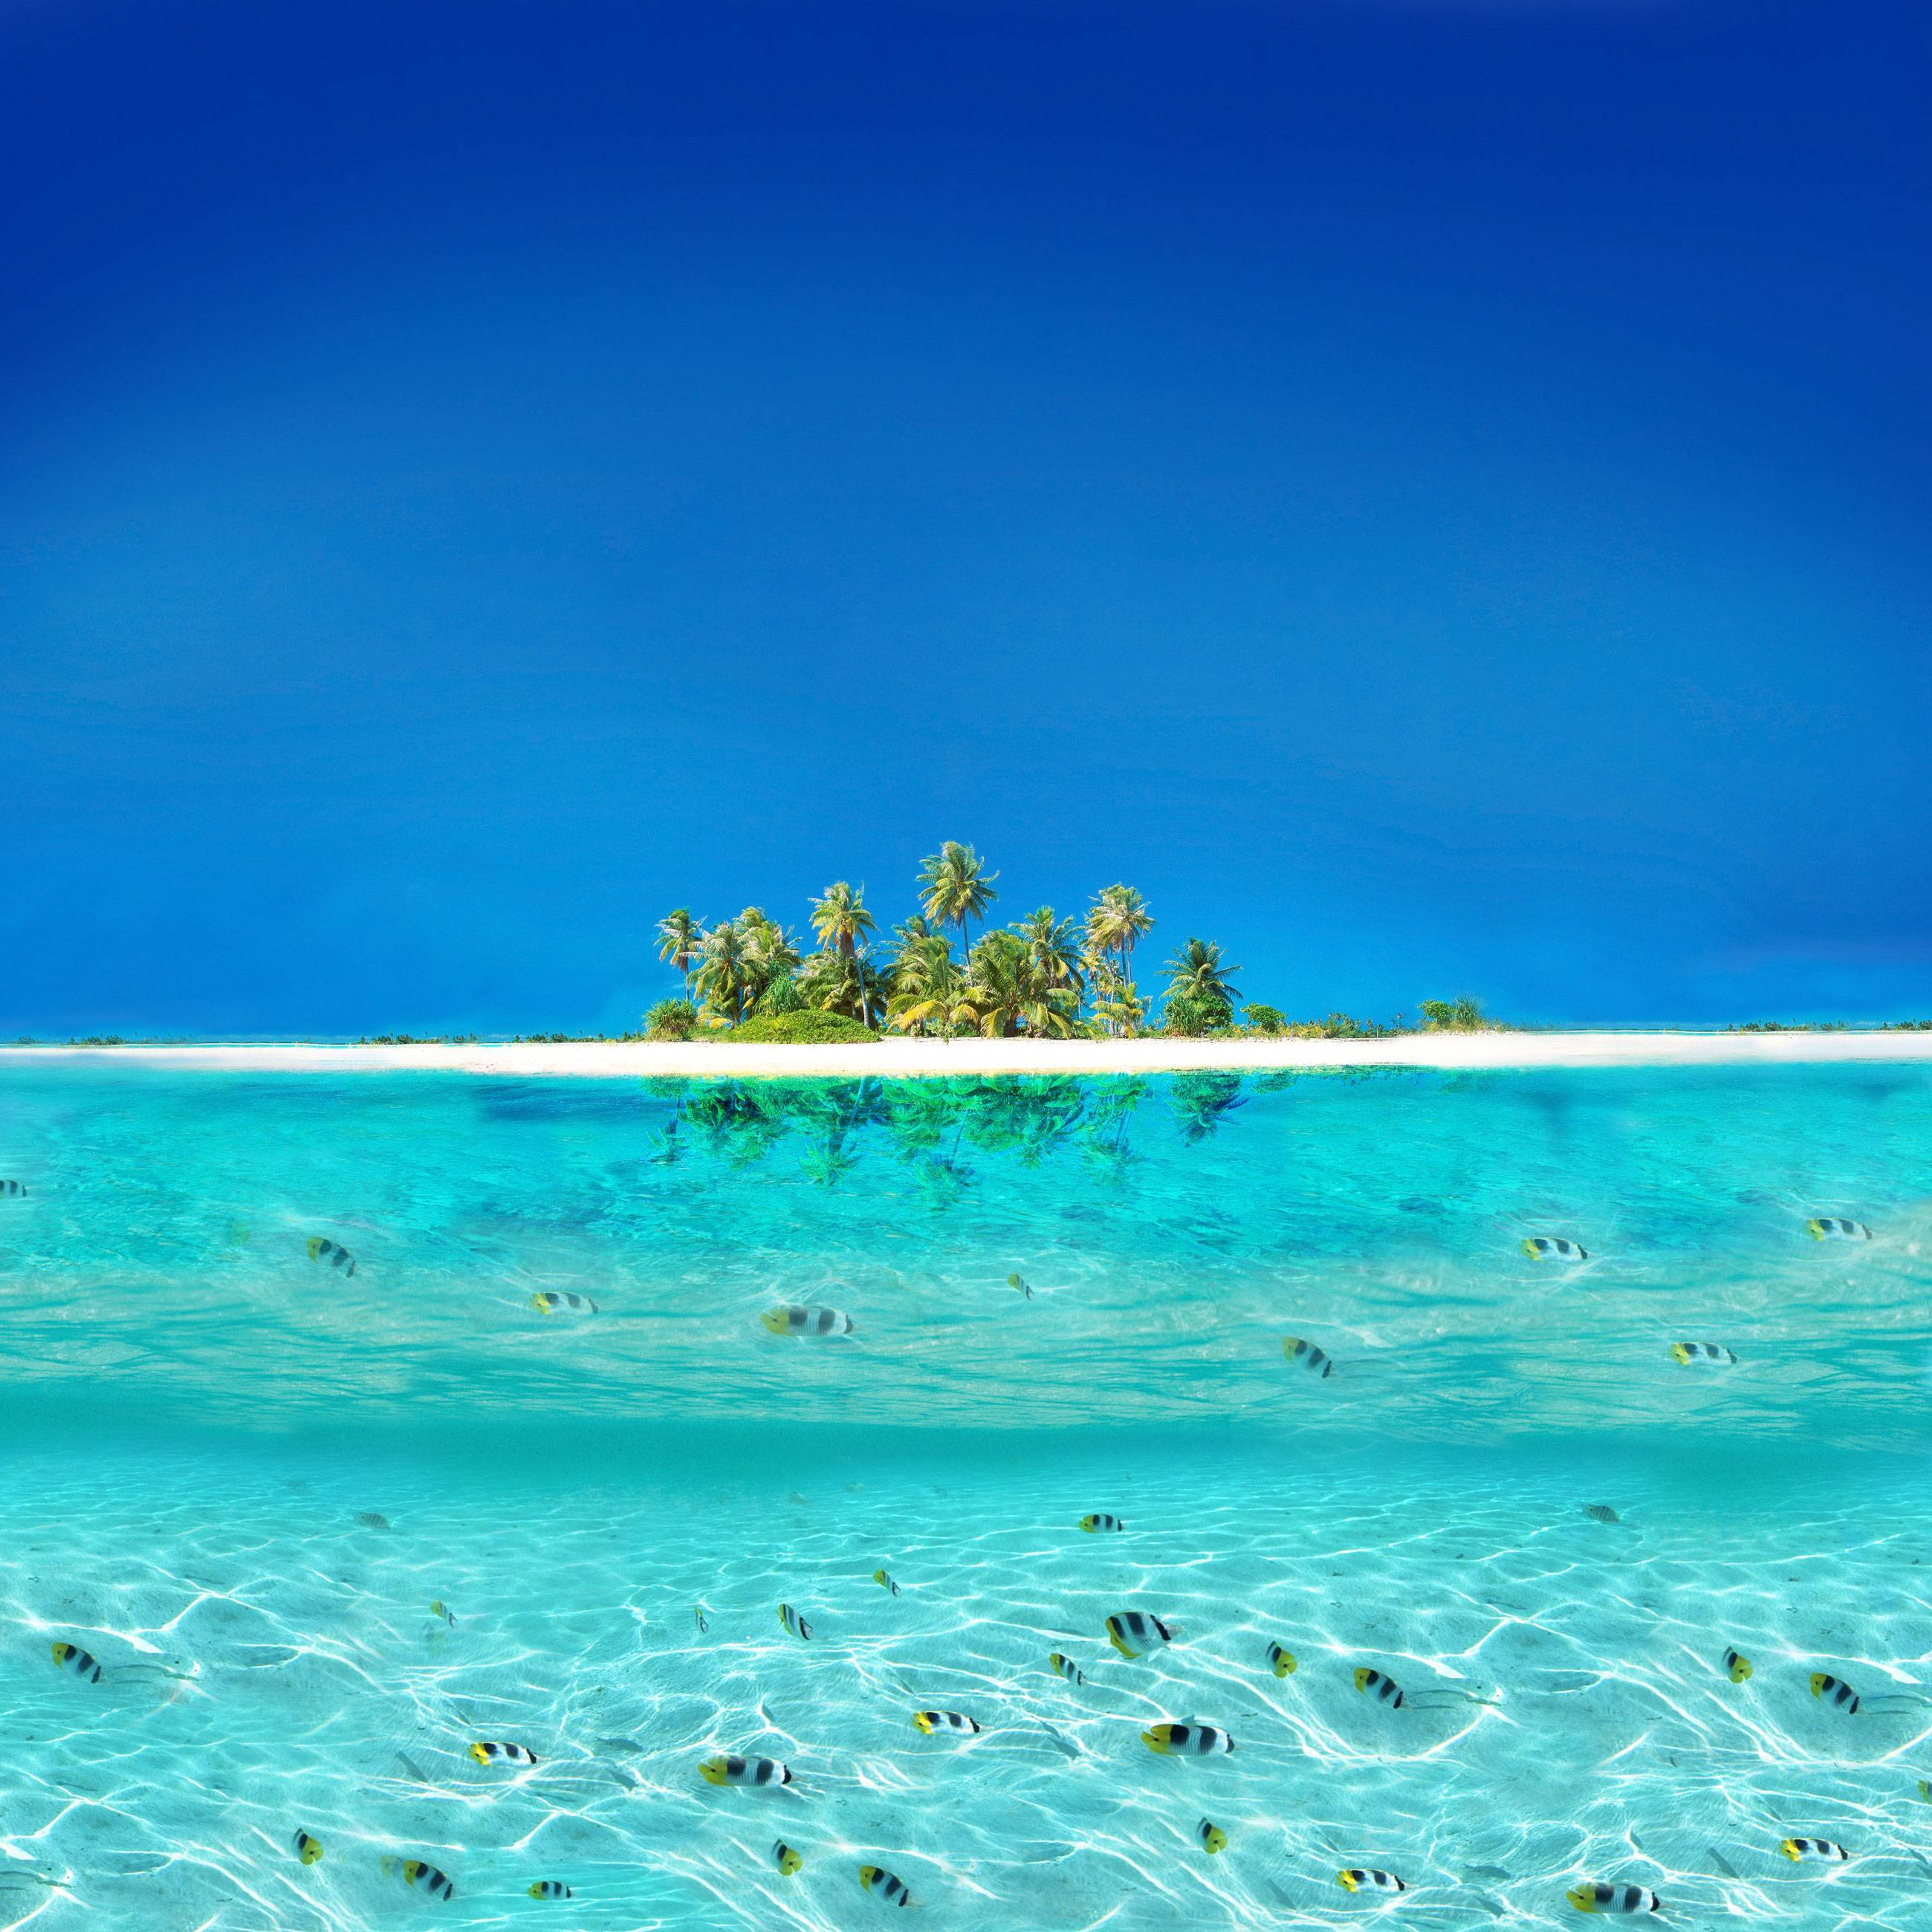 Background_island1